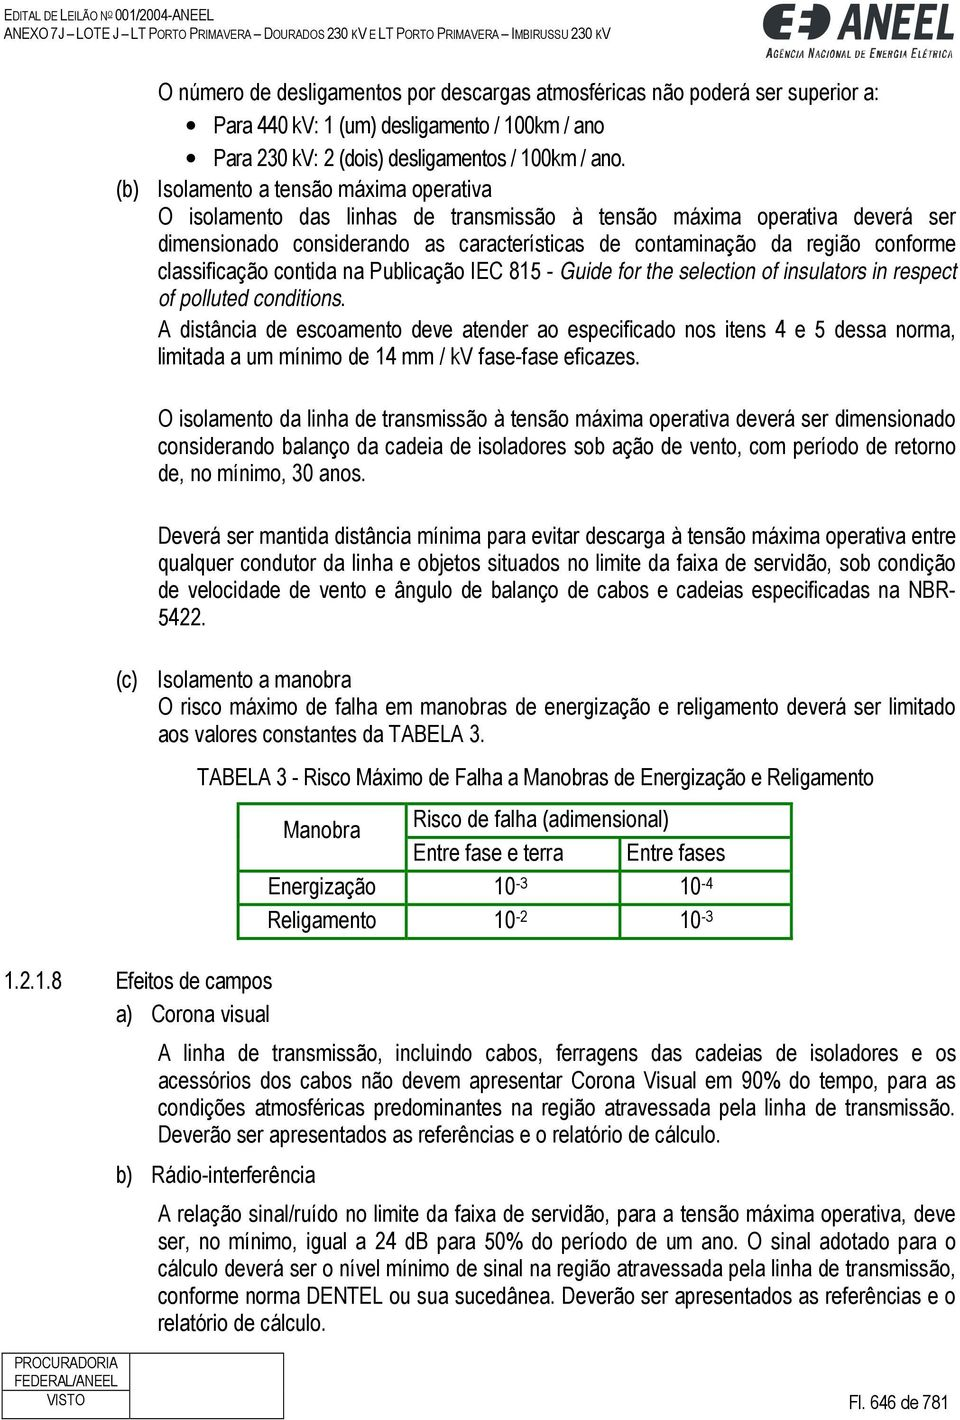 classificação contida na Publicação IEC 815 - Guide for the selection of insulators in respect of polluted conditions.